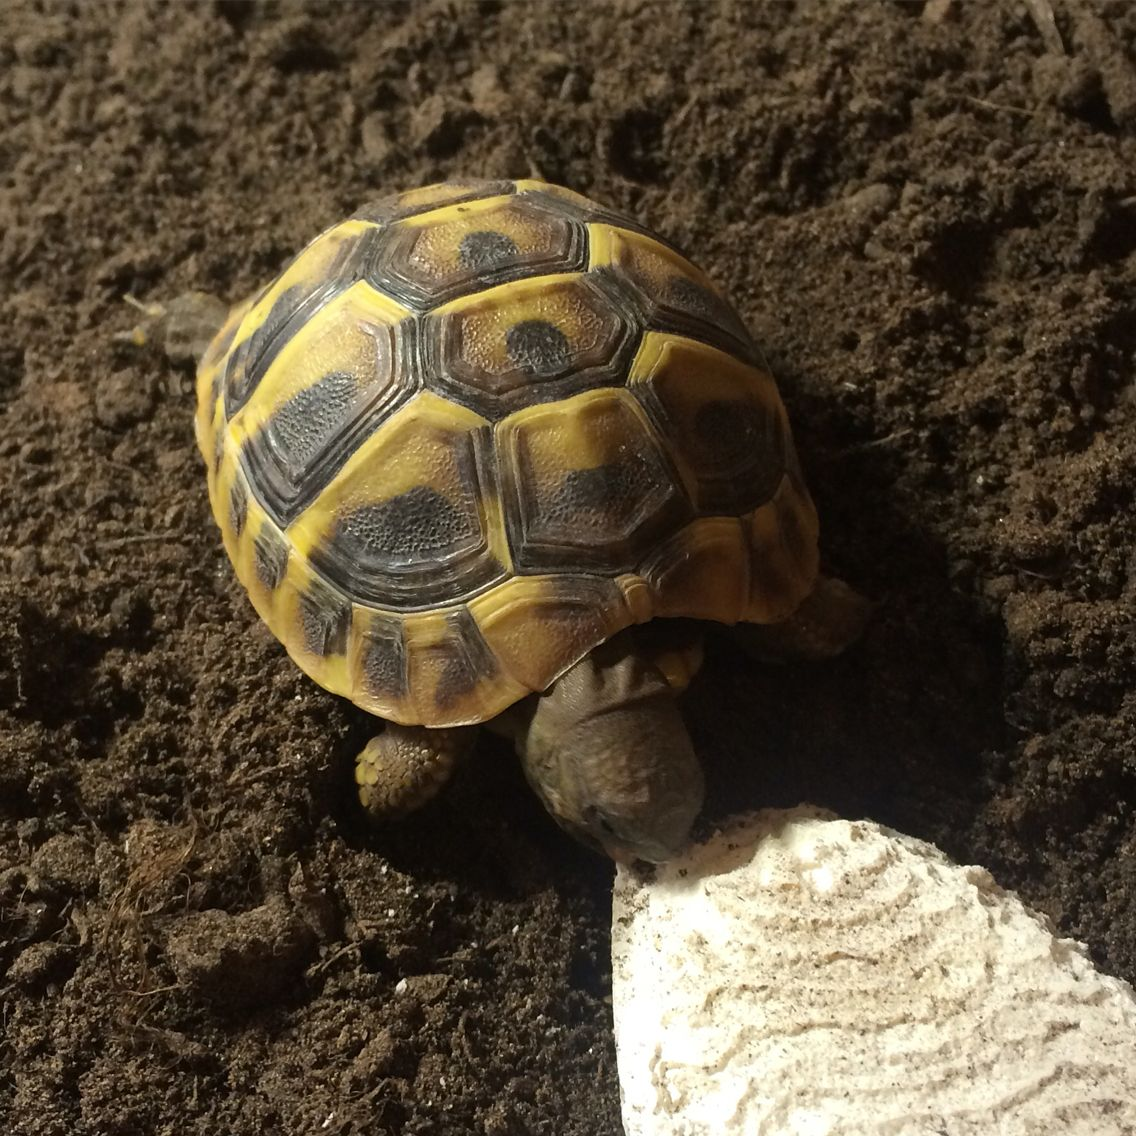 Luna our other little Hermanns | Tortoise | Pinterest